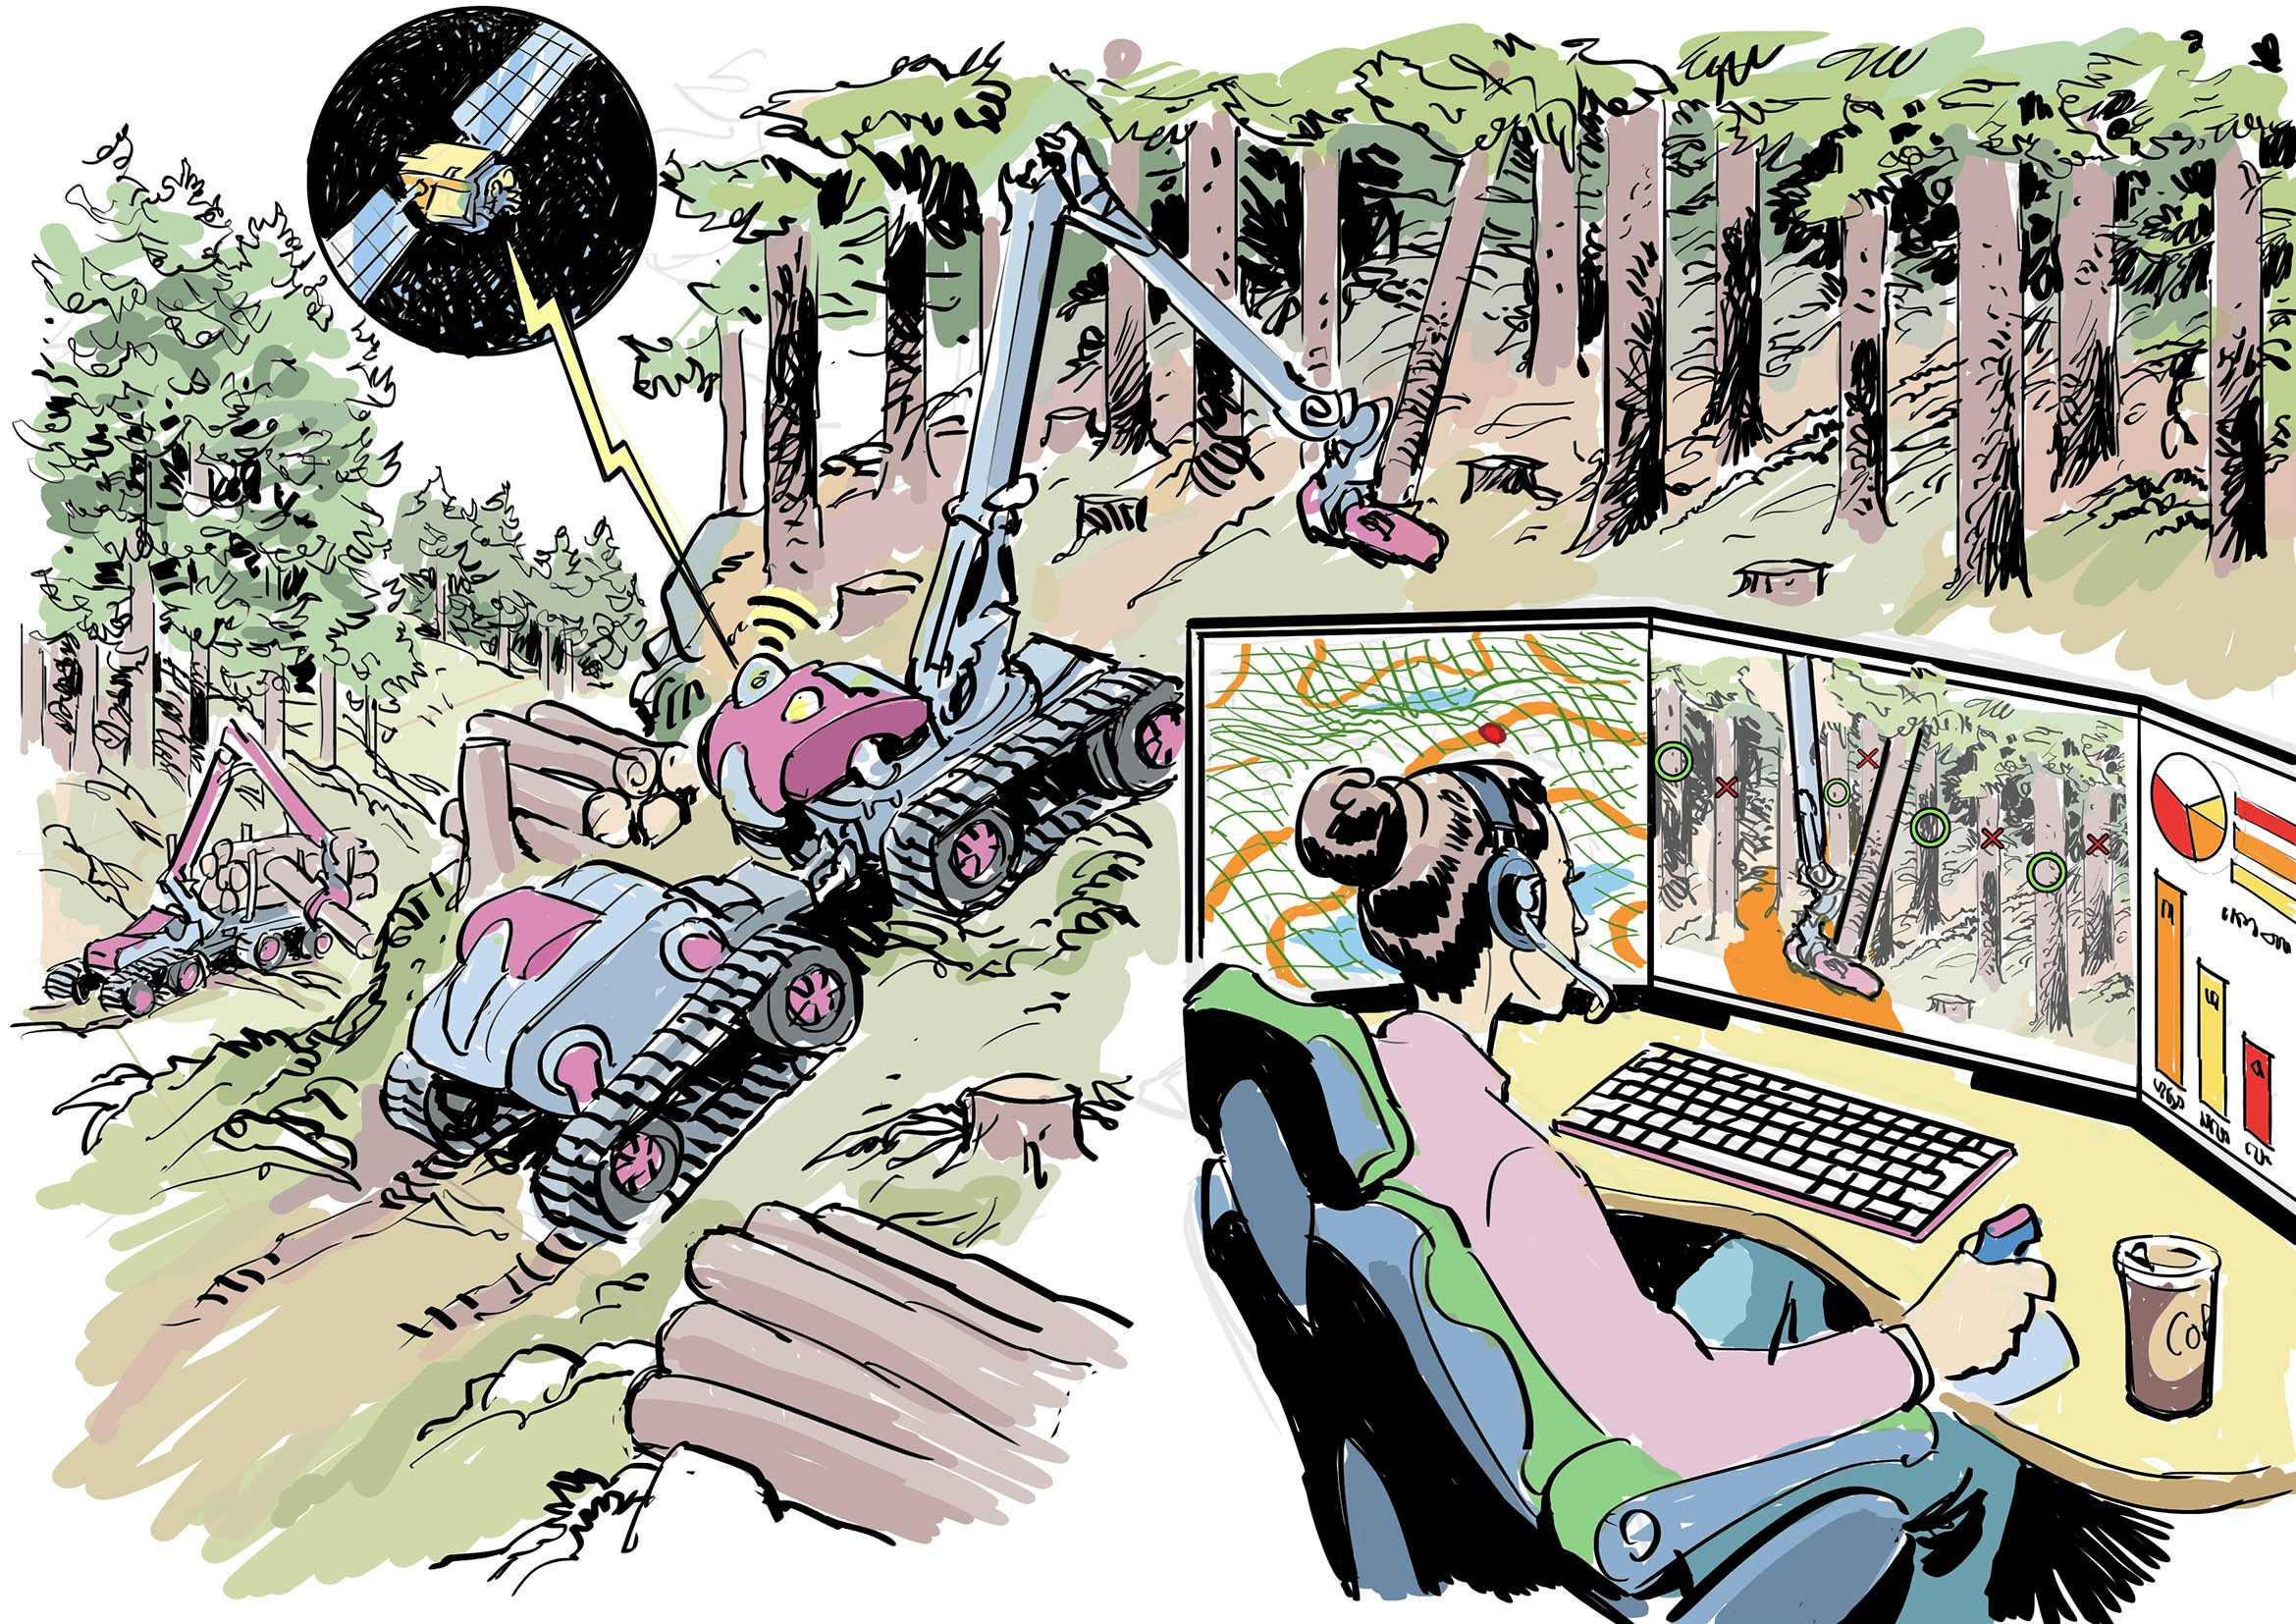 Femal at computer in foreground, machines cutting down trees in background. Illustration.